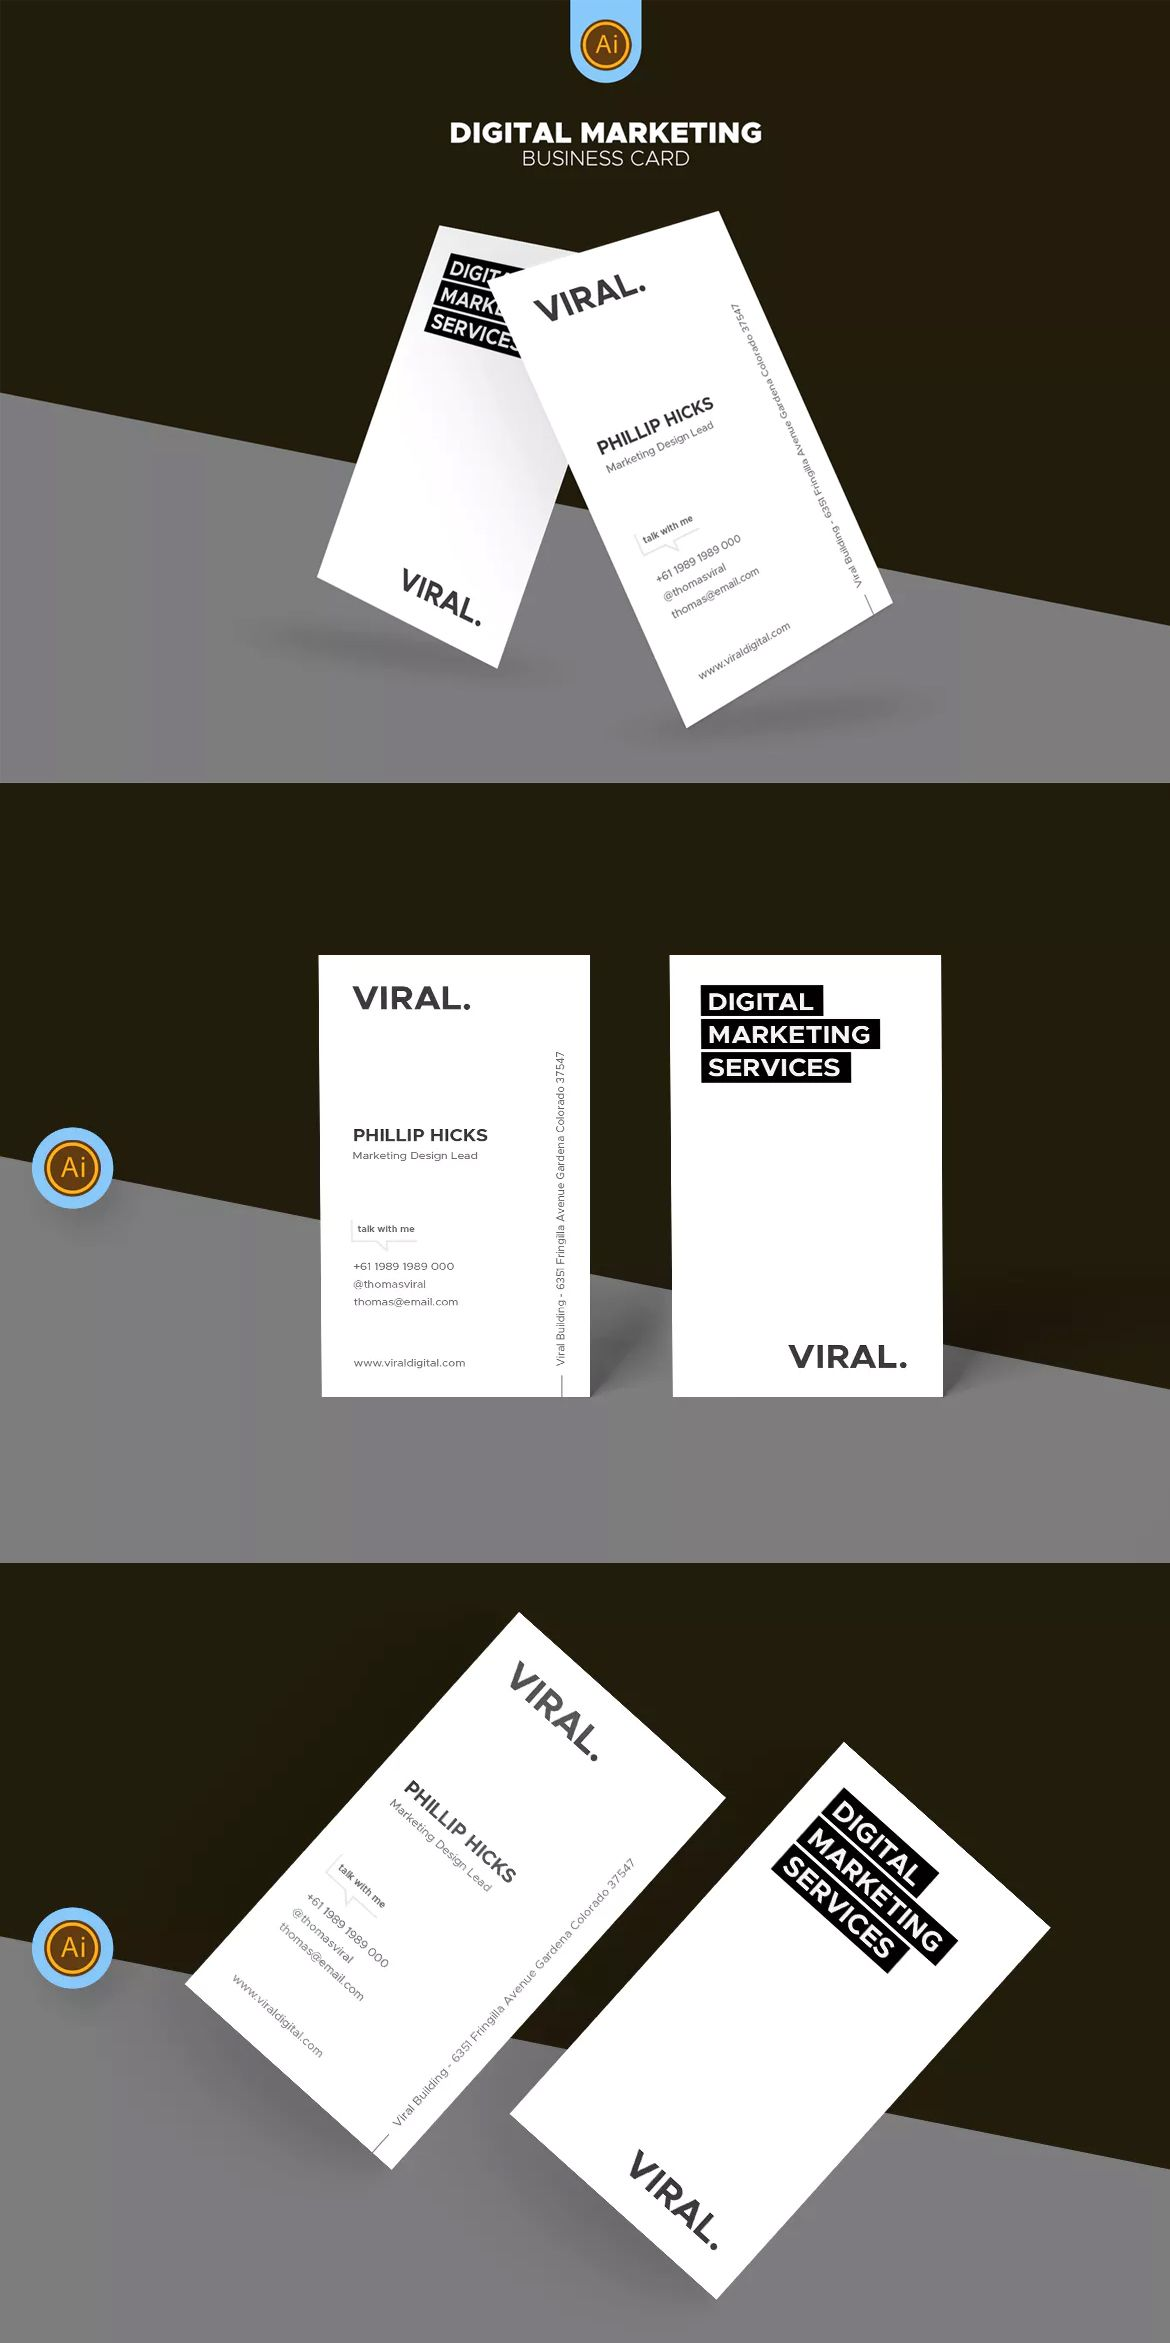 Digital Marketing Business Card Template AI #unlimiteddownloads ...